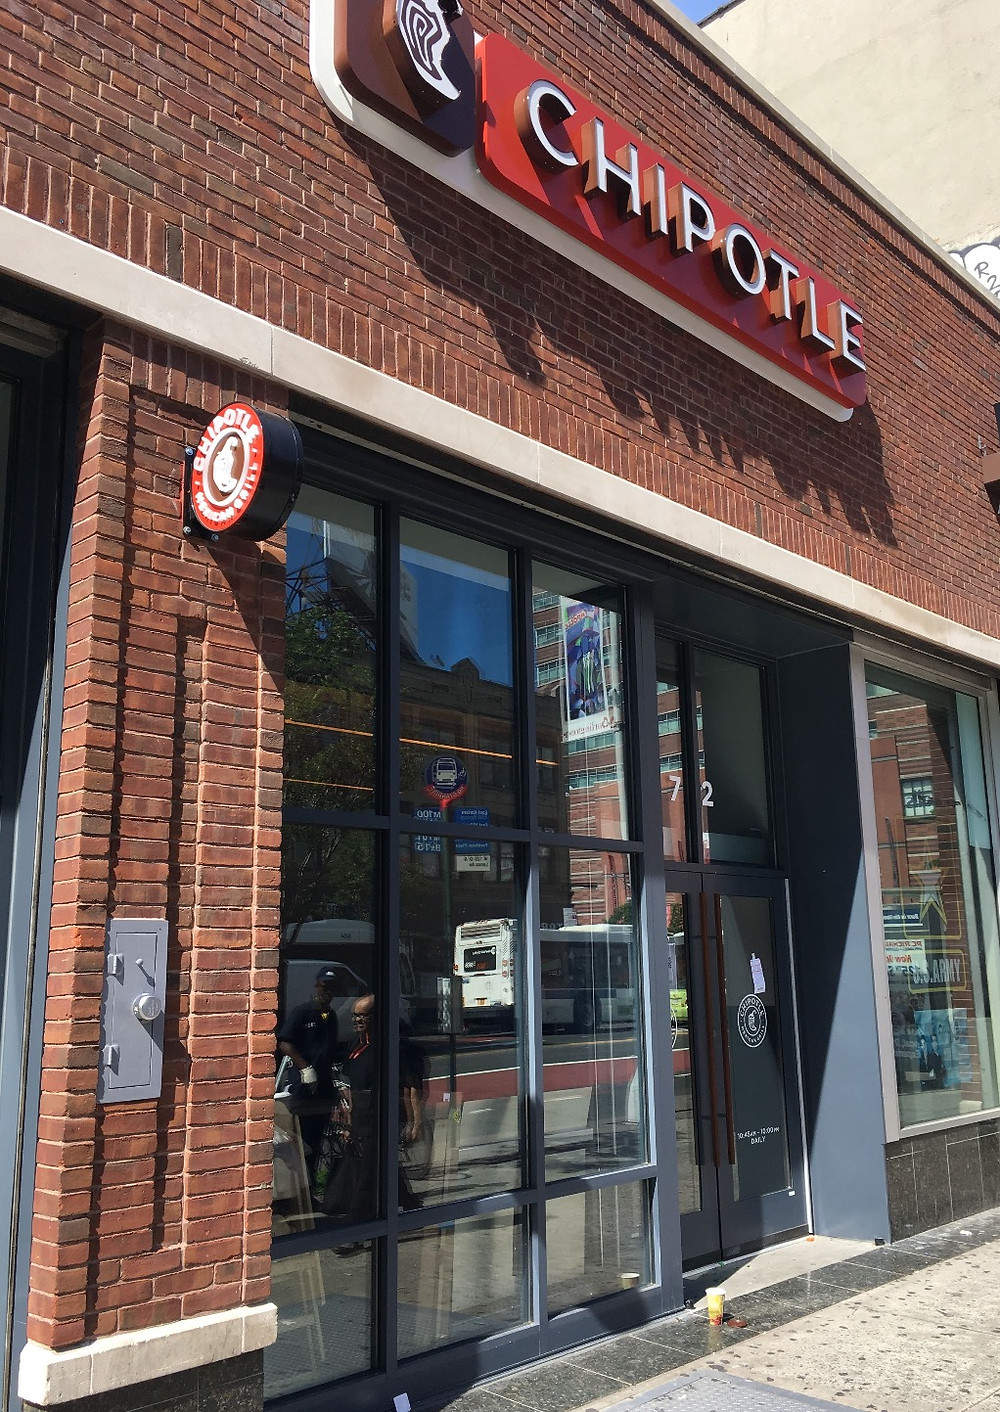 The Chipotle at 72 West 125th Street in Harlem